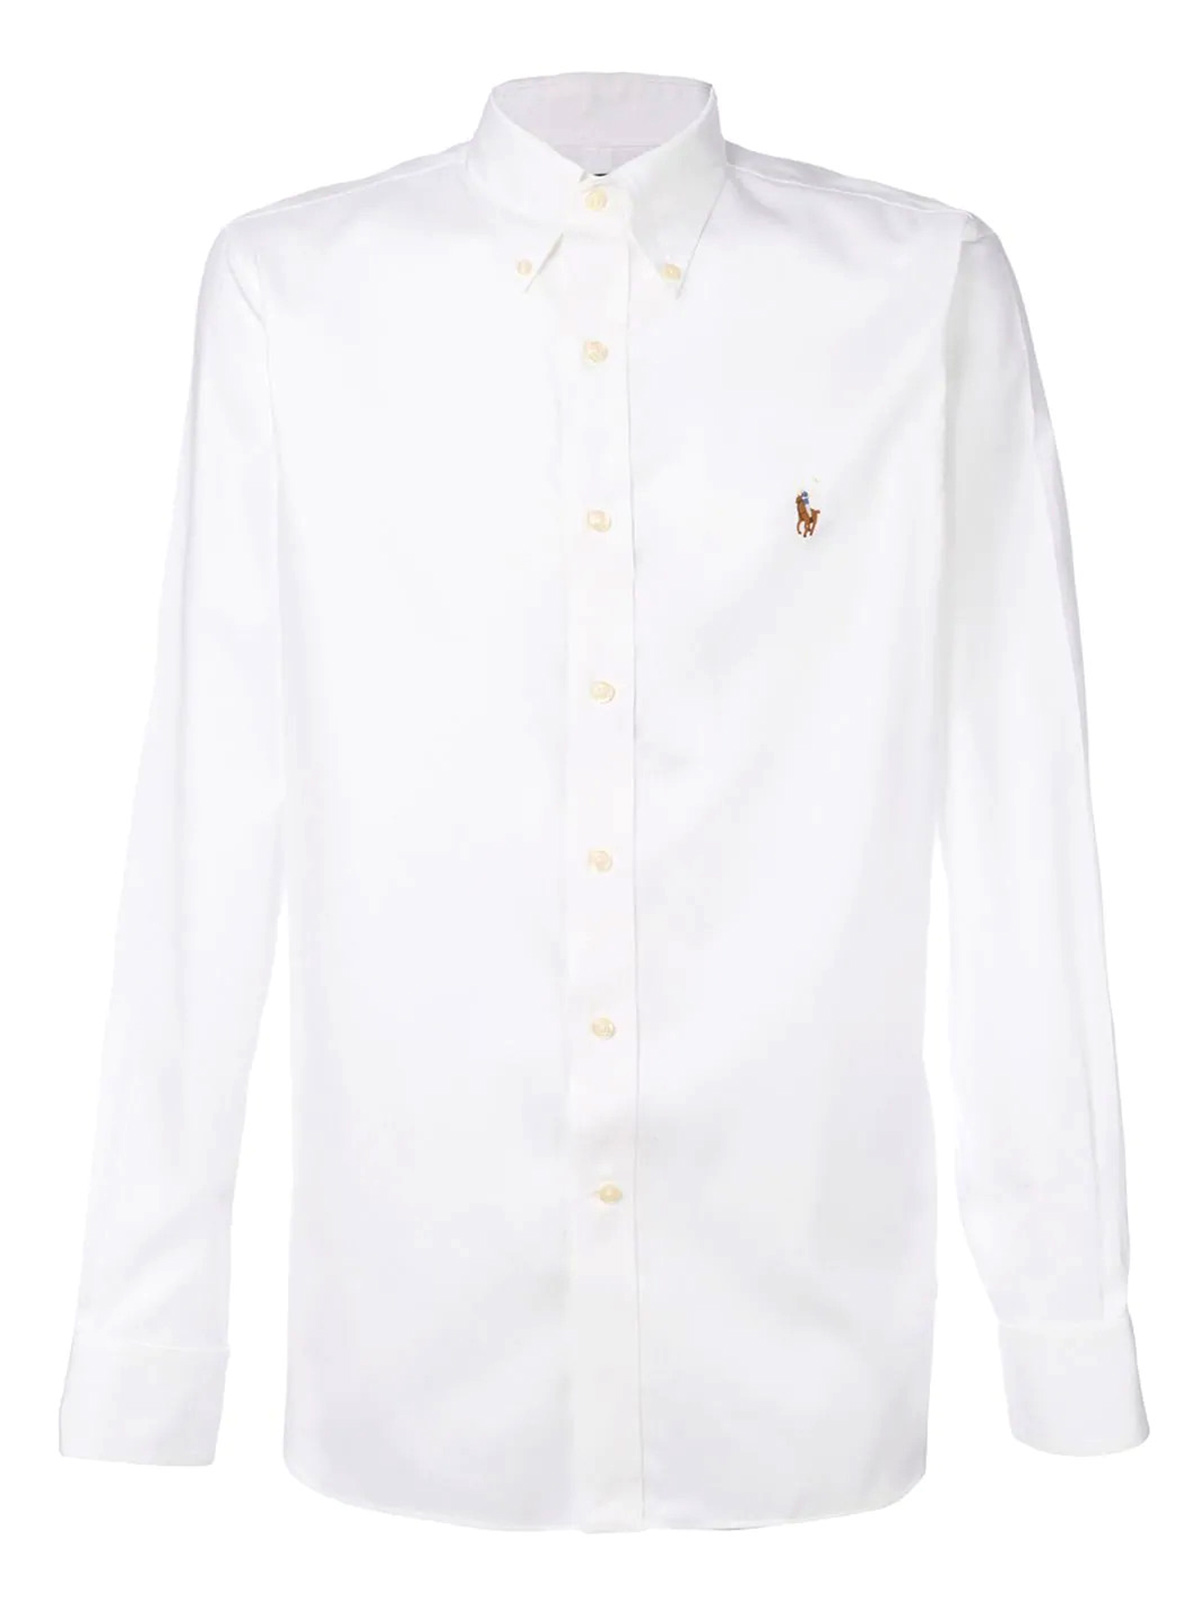 Picture of POLO RALPH LAUREN | Men's Custom Fit Oxford Shirt